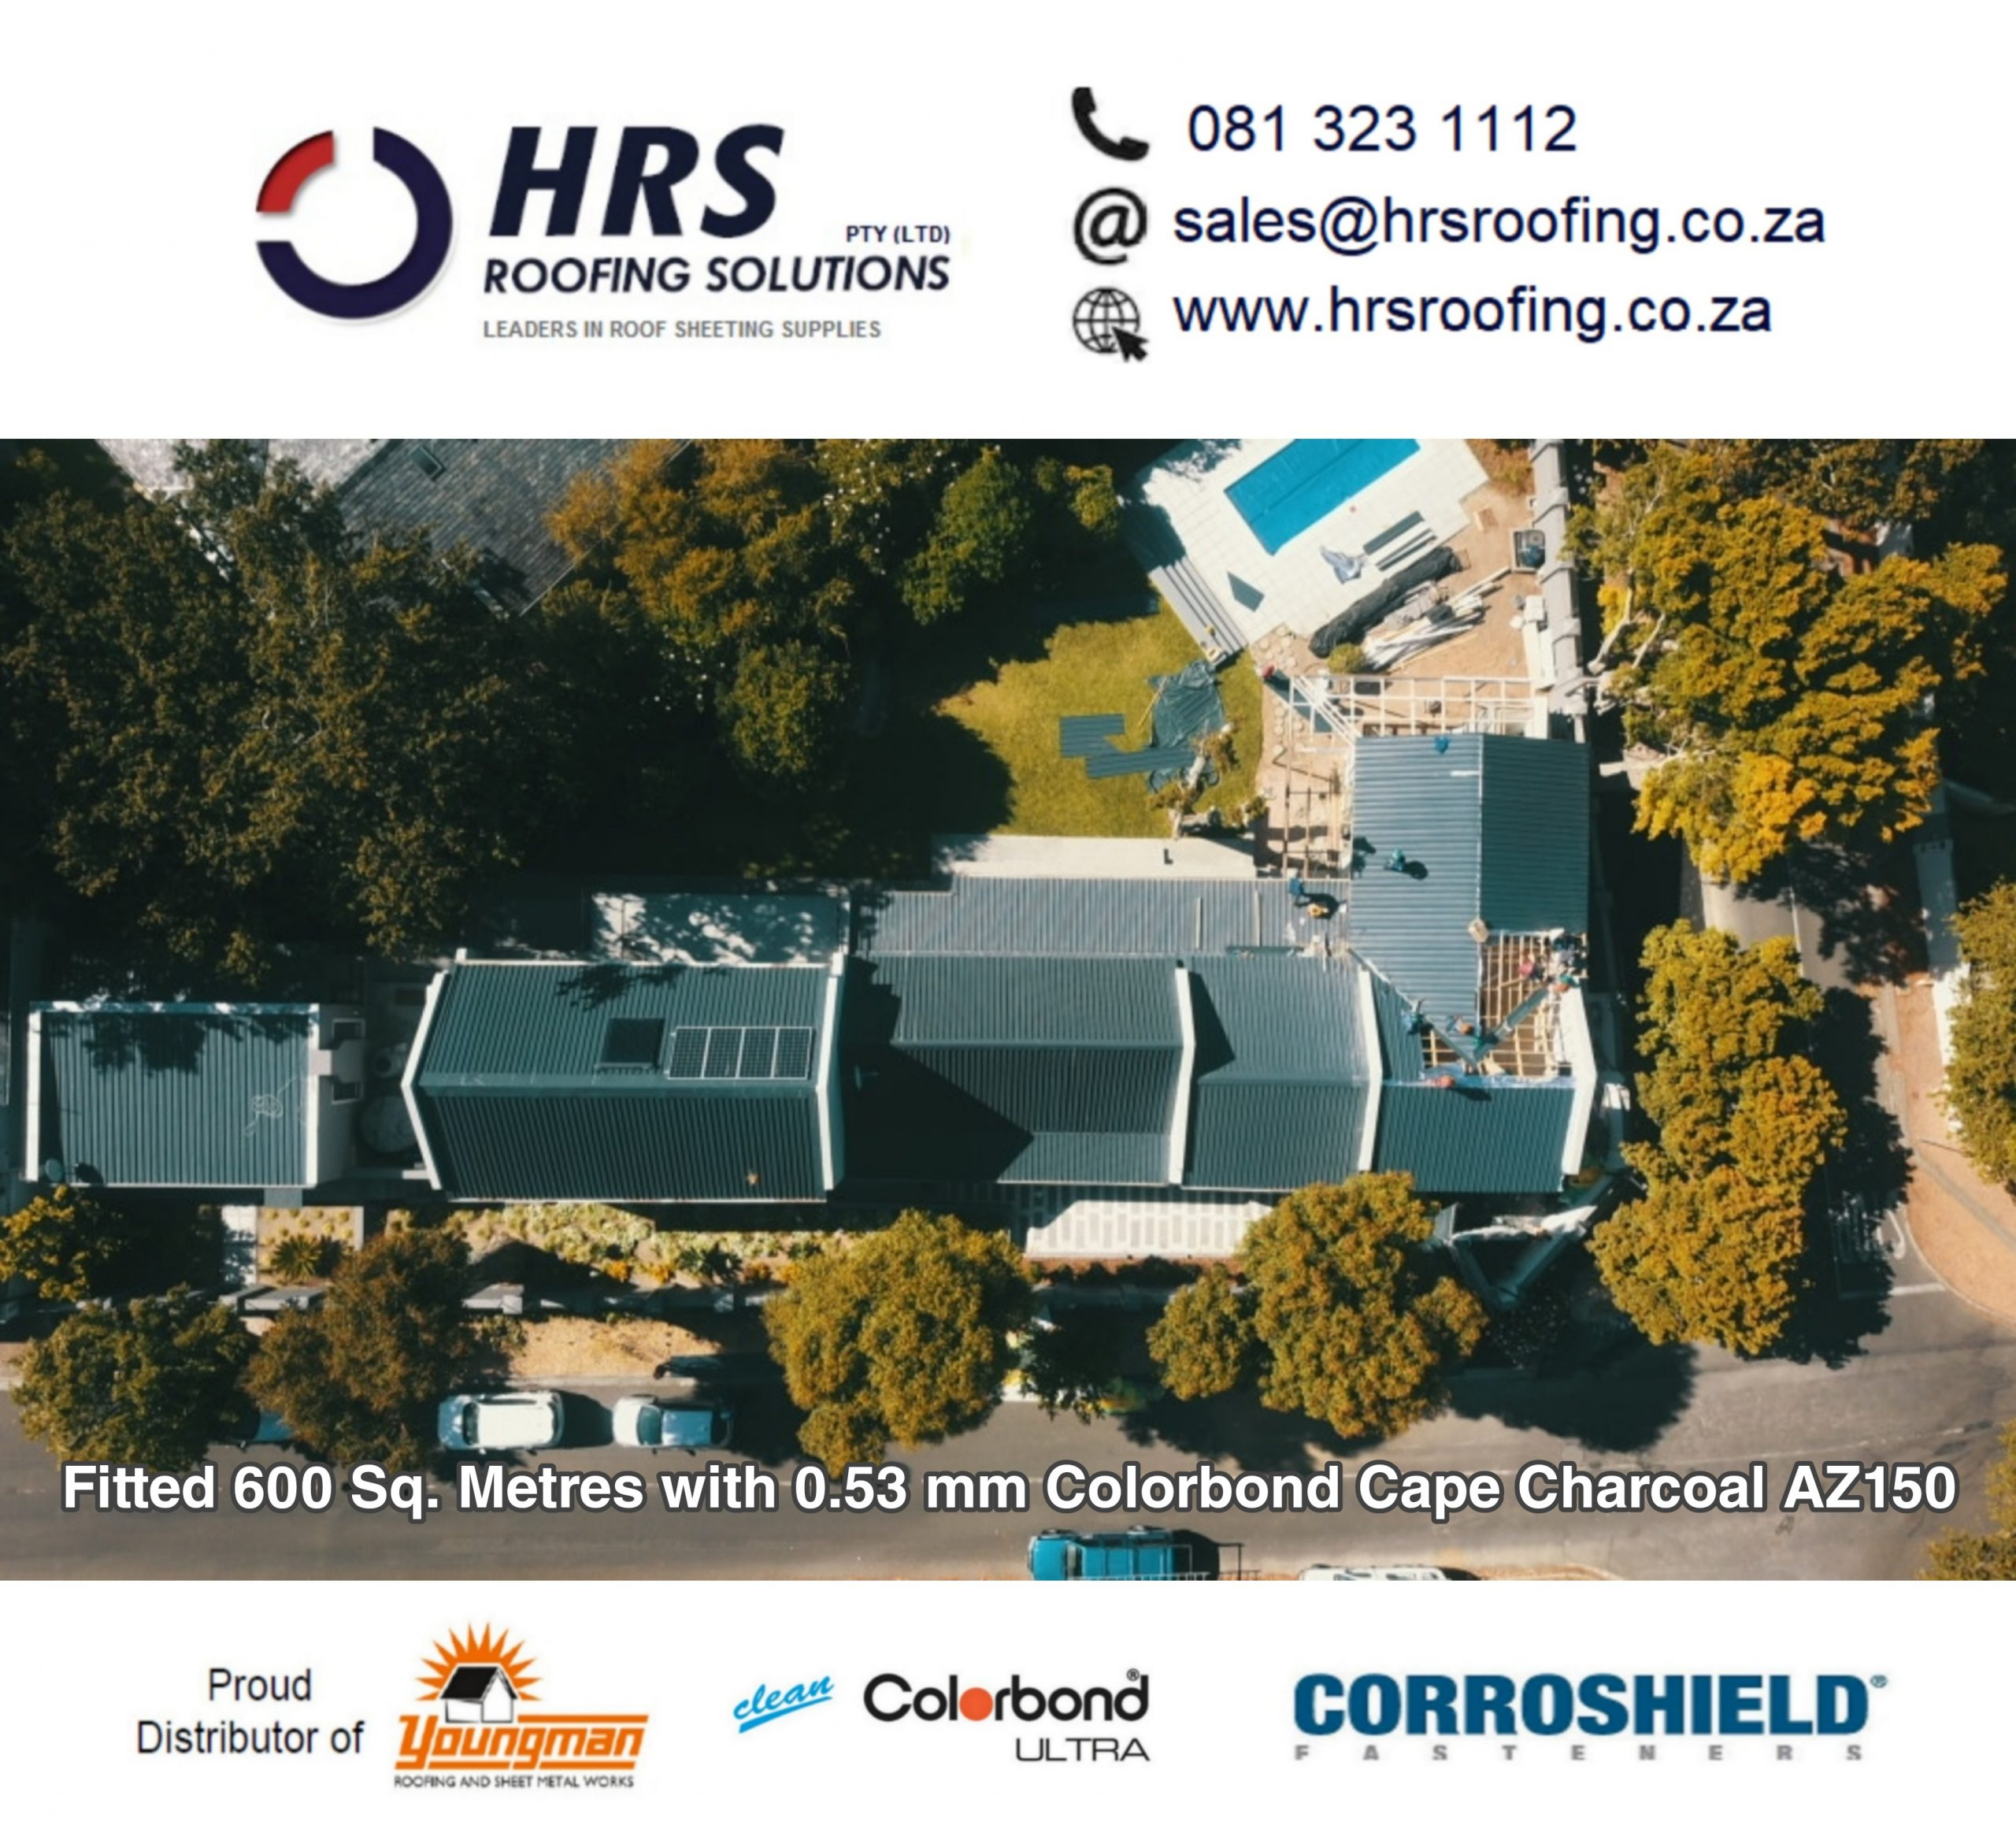 Springlok 700 Colorbond roof sheet cape town hrs roofing solutions Durbanville